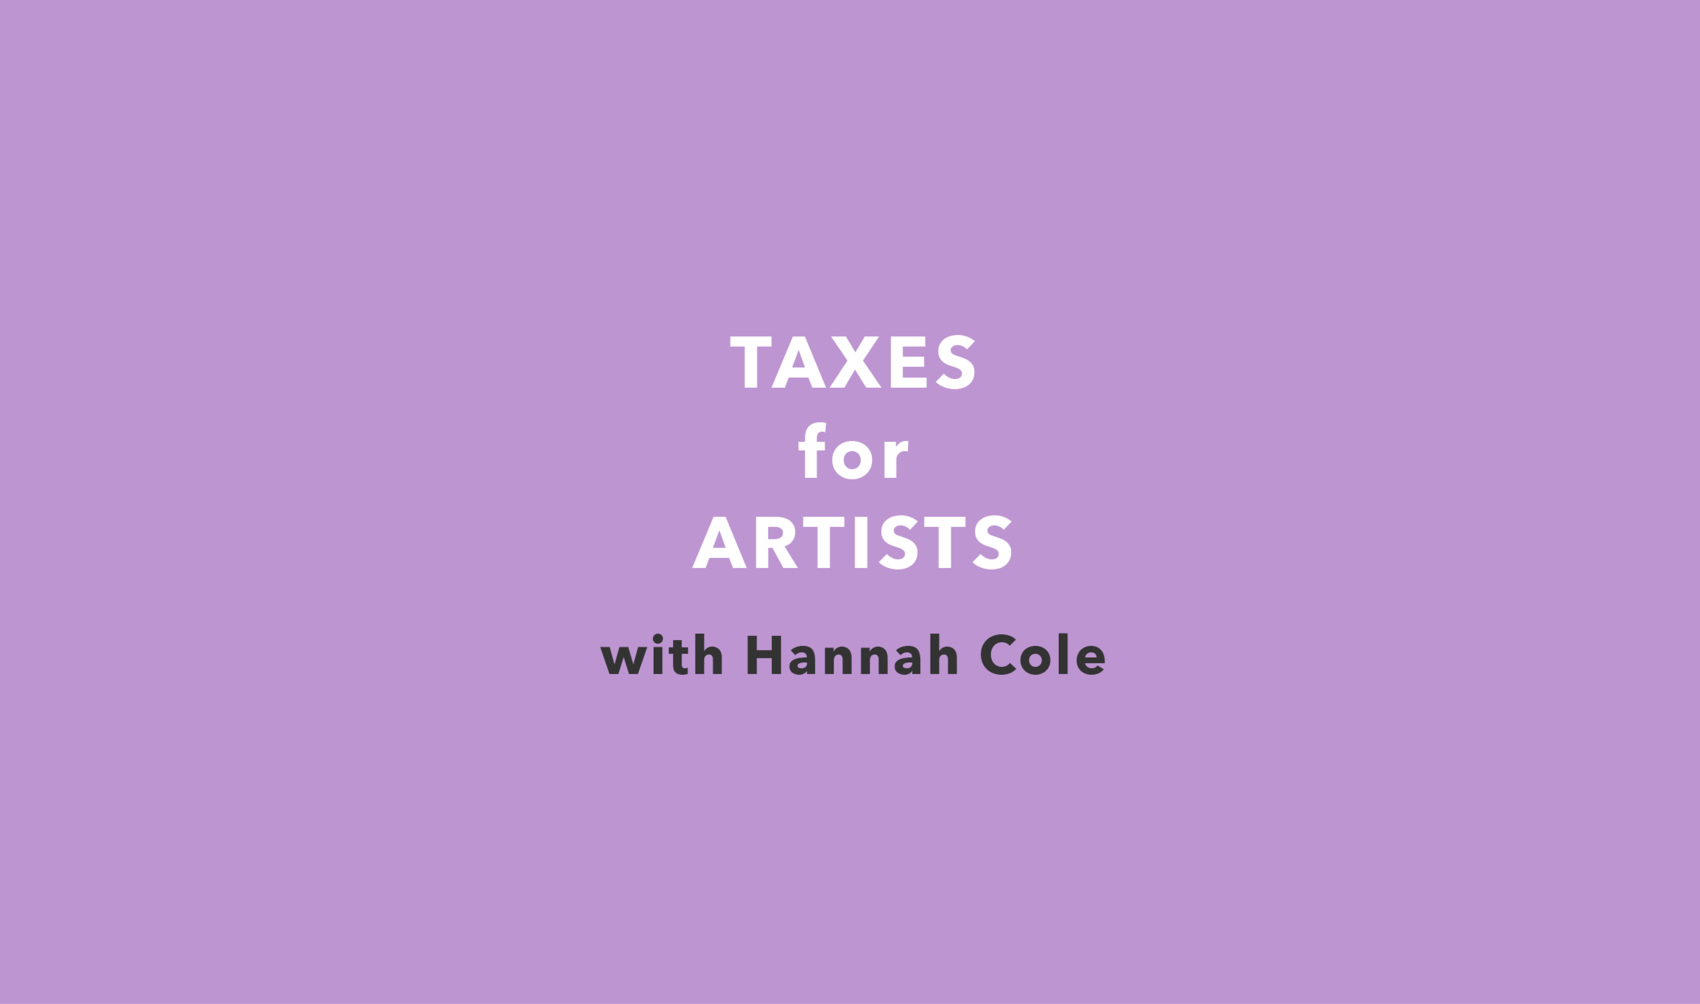 taxes-for-artists-rectangle-for-eventbrite-1400px.jpg